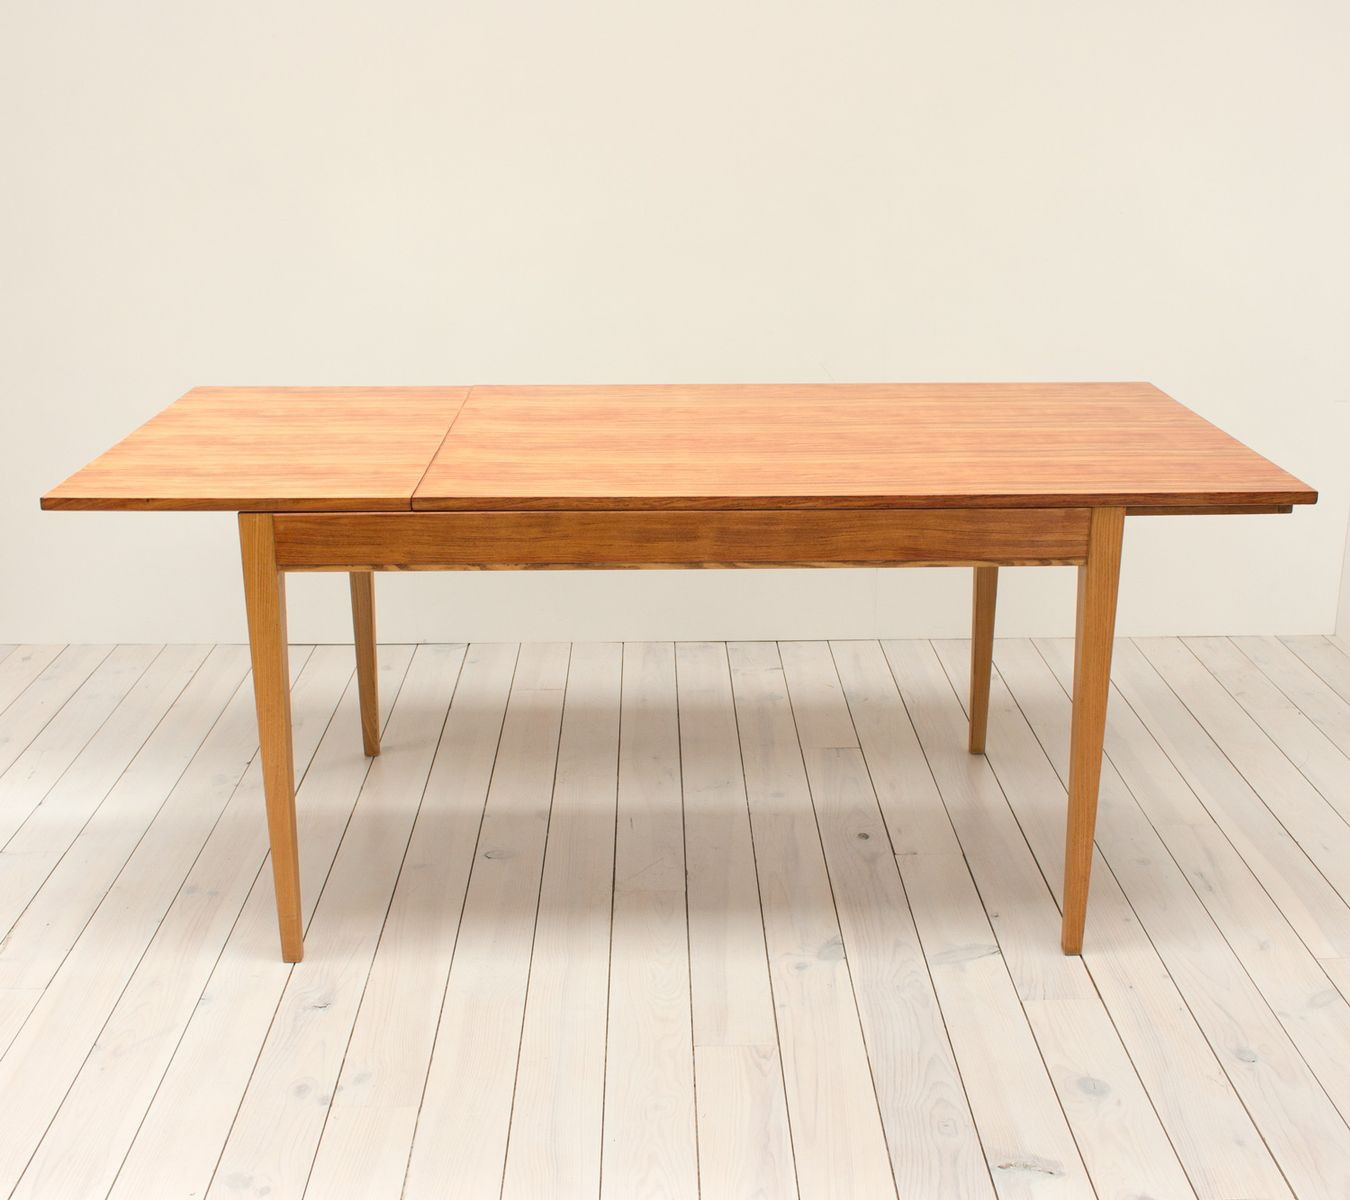 Gordon Russell Coffee Table Guiting Extending Dining Table By Trevor Chinn For Gordon Russell